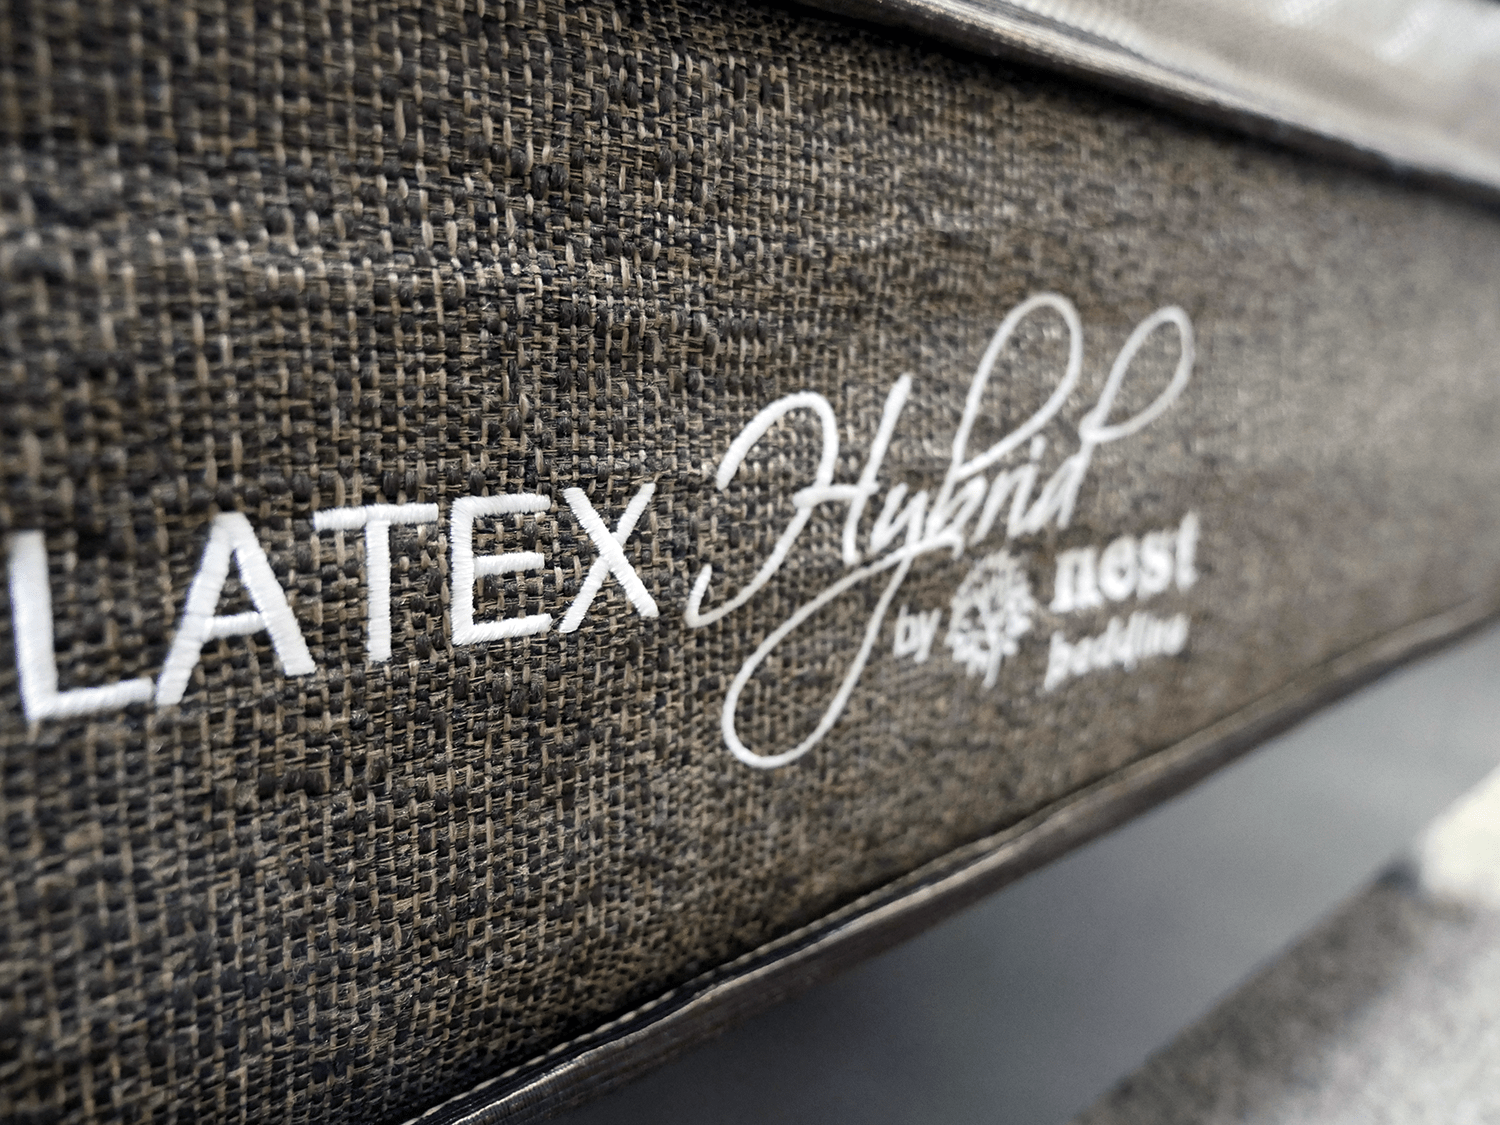 Close up shot of the Nest latex hybrid mattress logo